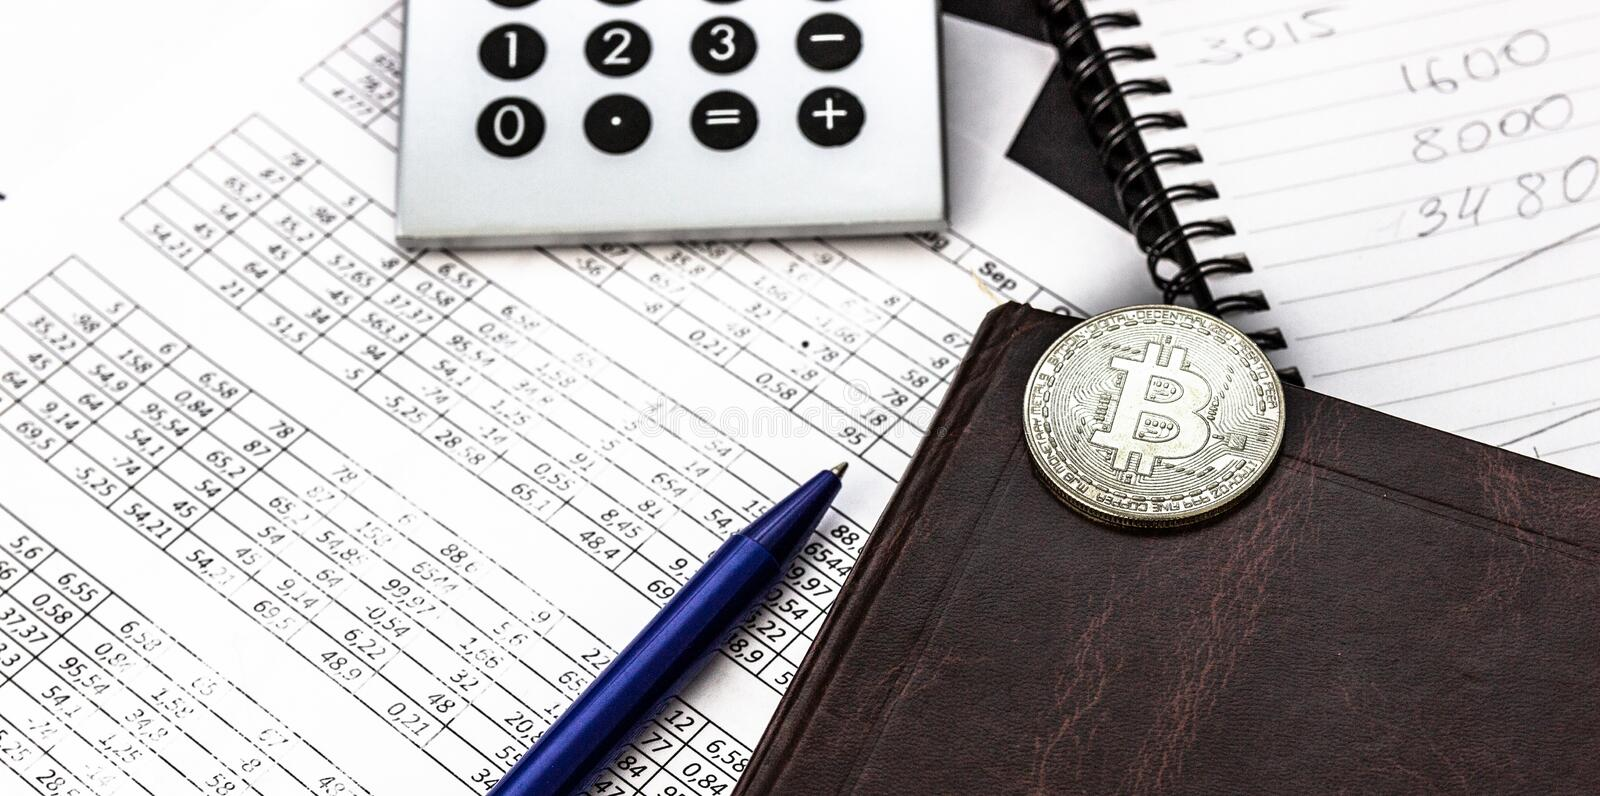 Mess on your desktop. Calculator, notebook, documents, Bitcoin, office supplies stock image